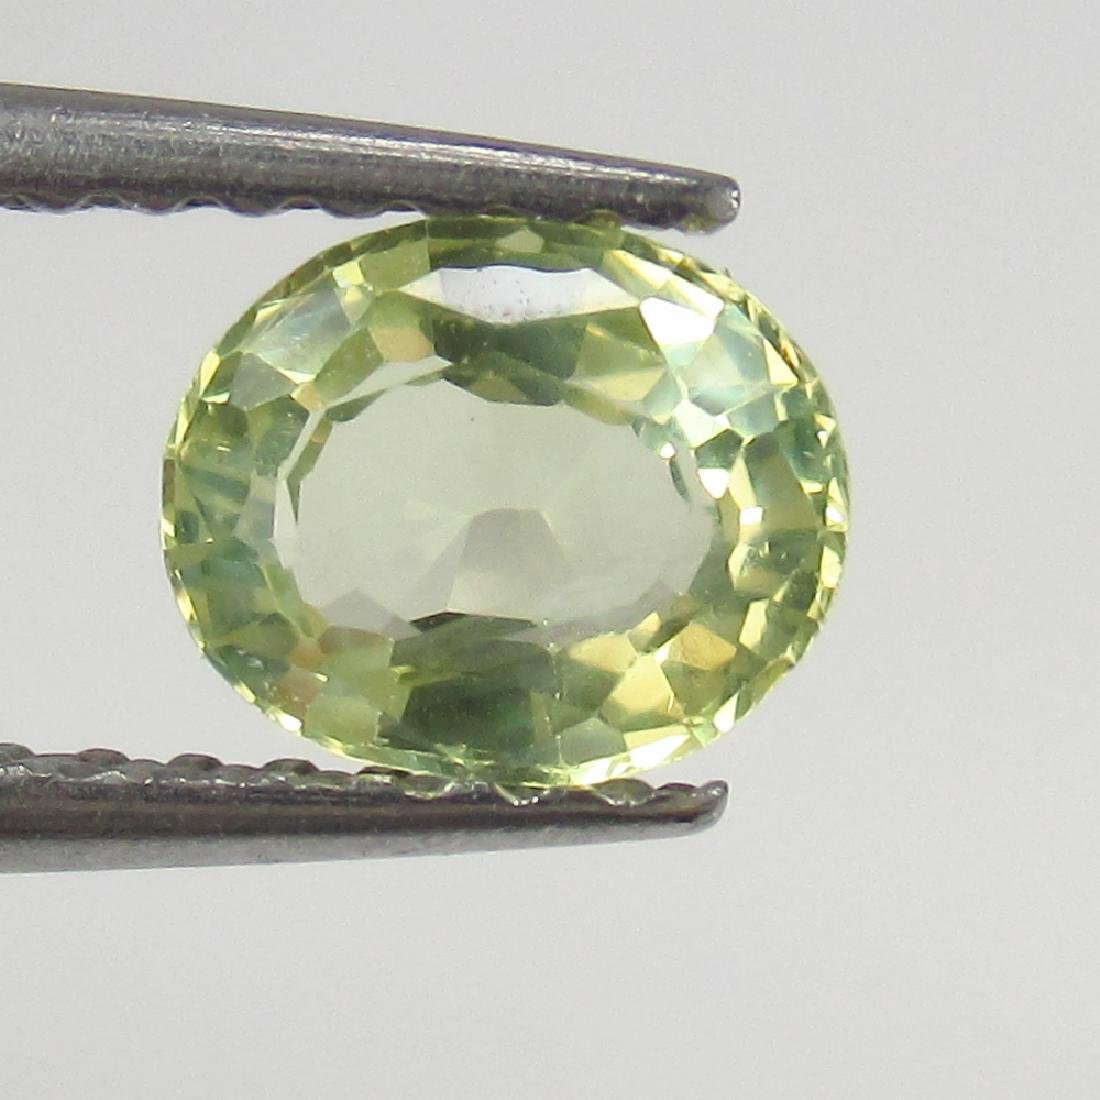 0.65 Ct Genuine IGI Certified Top Luster Chrysopberyl - 4